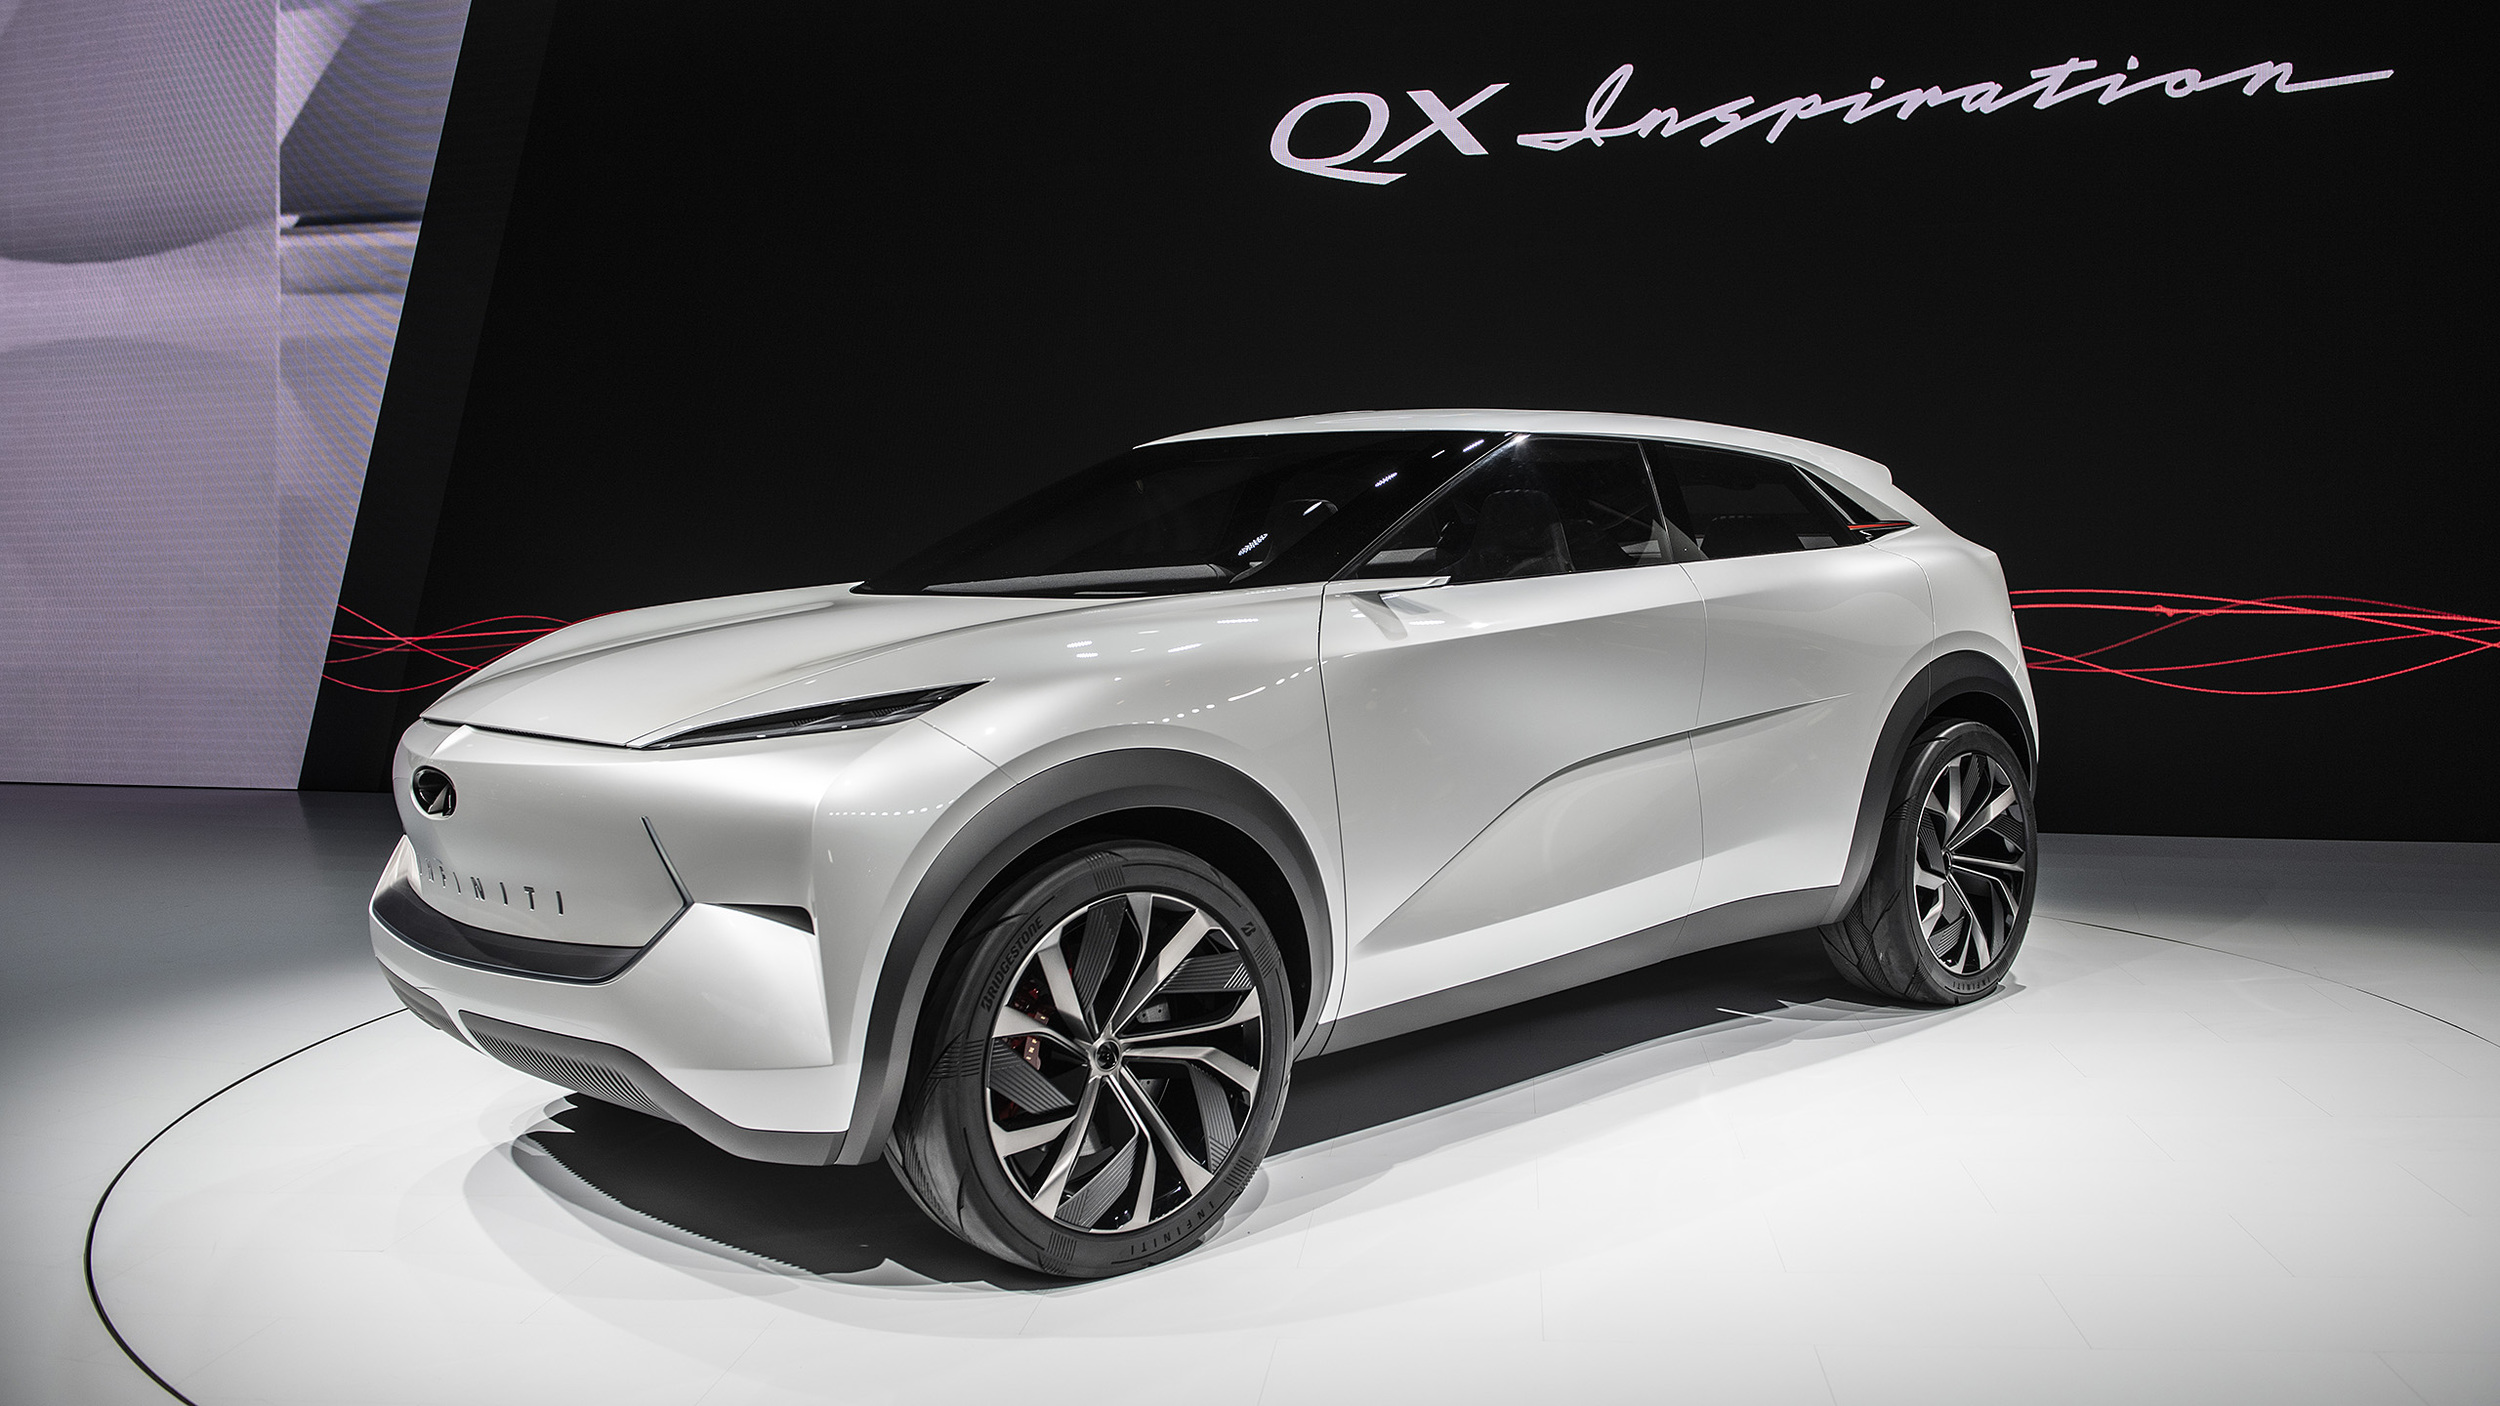 Certified Pre Owned Infiniti >> Infiniti QX Inspiration electric SUV concept makes its ...